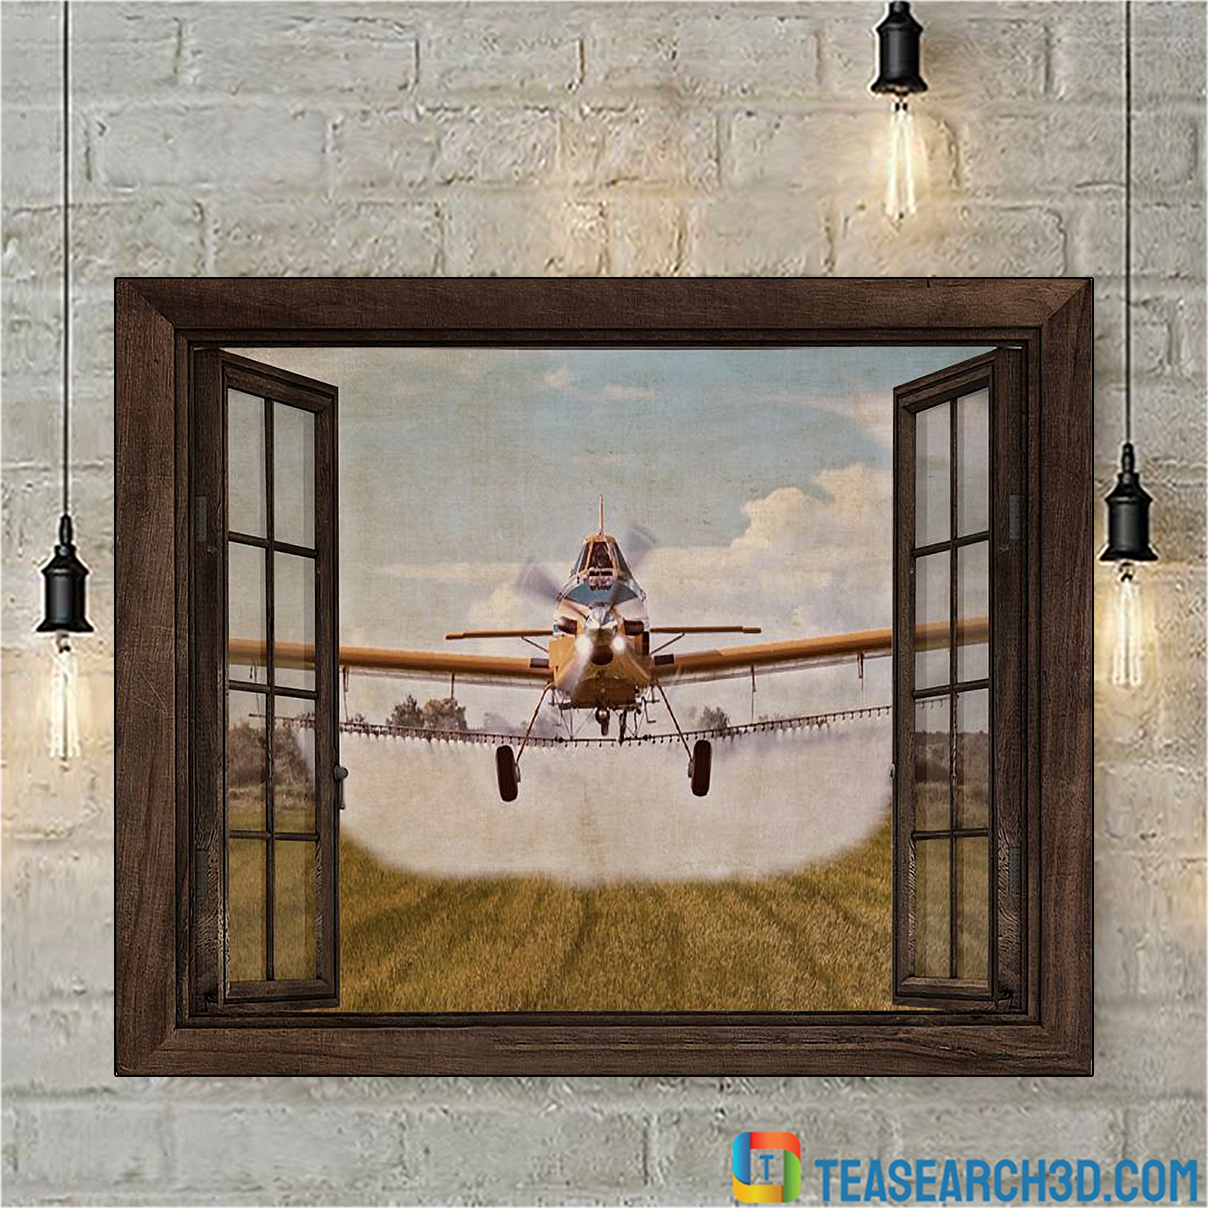 Agricultural aircraft window view poster A3